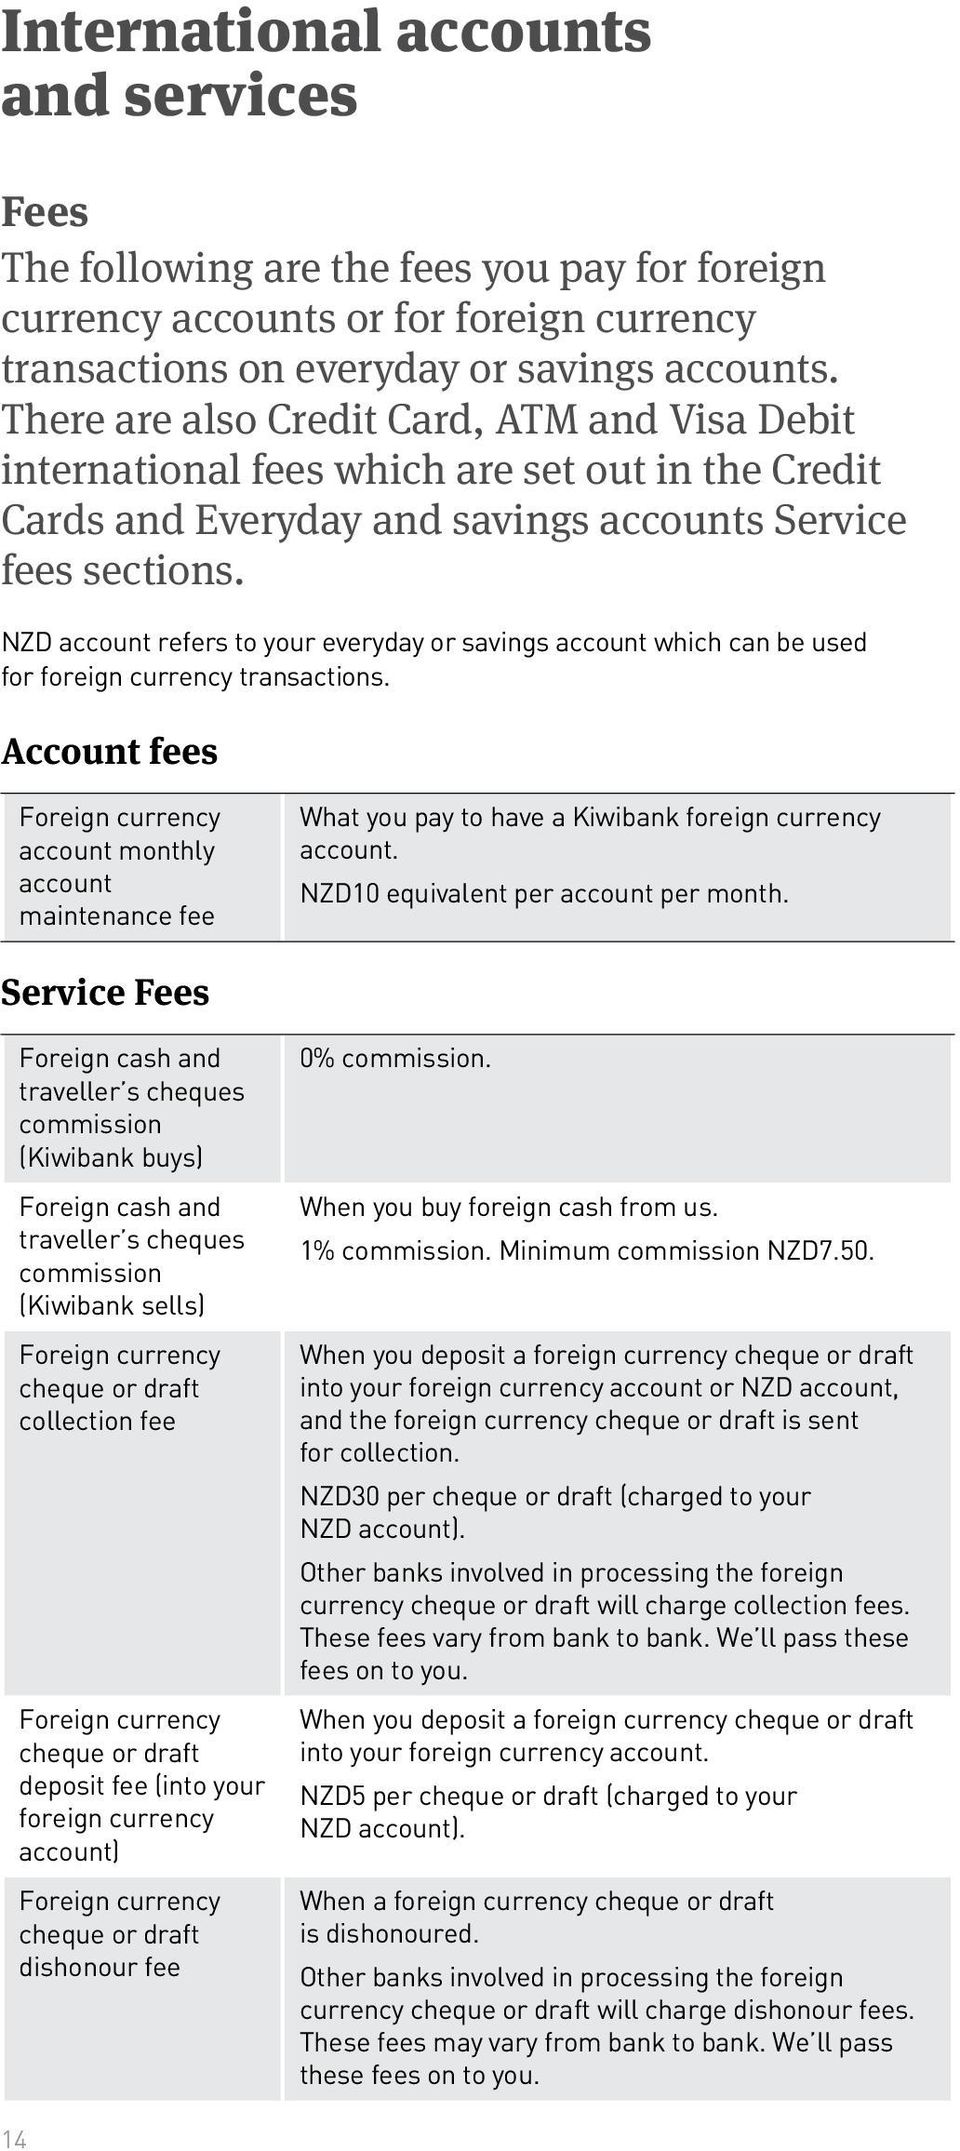 NZD account refers to your everyday or savings account which can be used for foreign currency transactions.